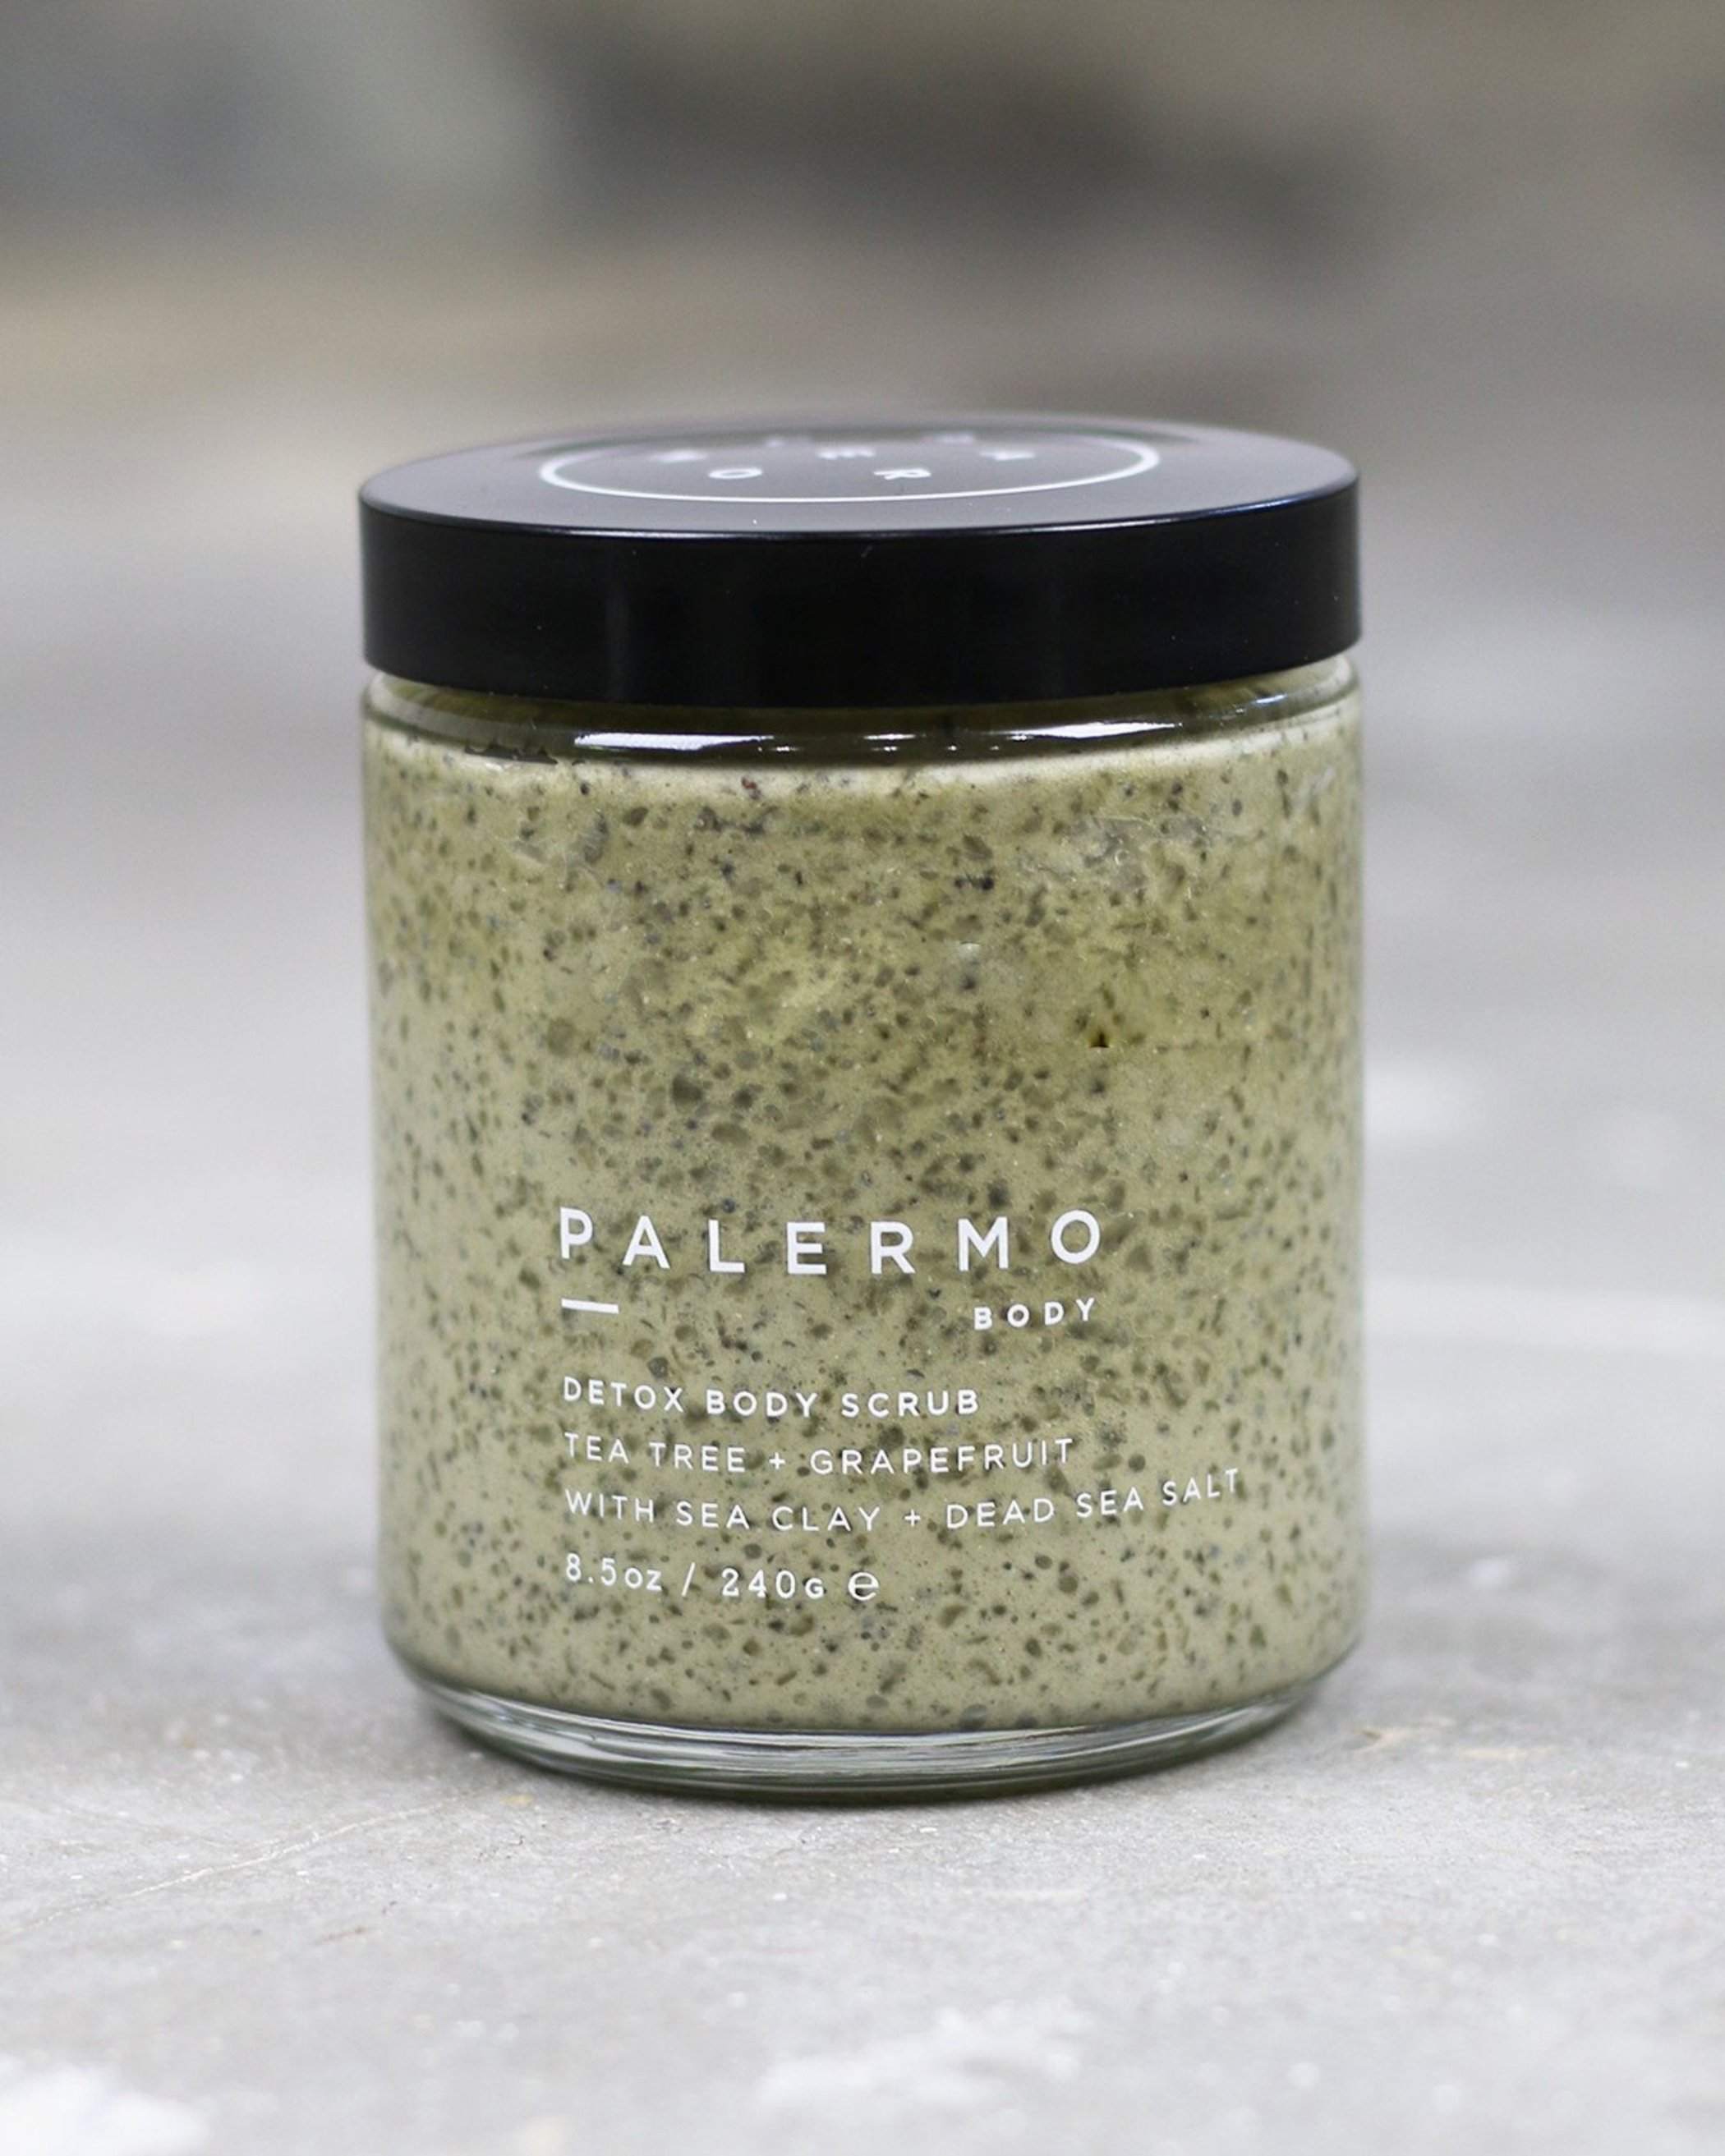 Palermo Body - Detox Body Scrub / $48Dead sea salt + pumice stone polish your skin with invigorating exfoliation while sea clay draws out toxins and impurities leaving skin feeling smooth and revitalized.